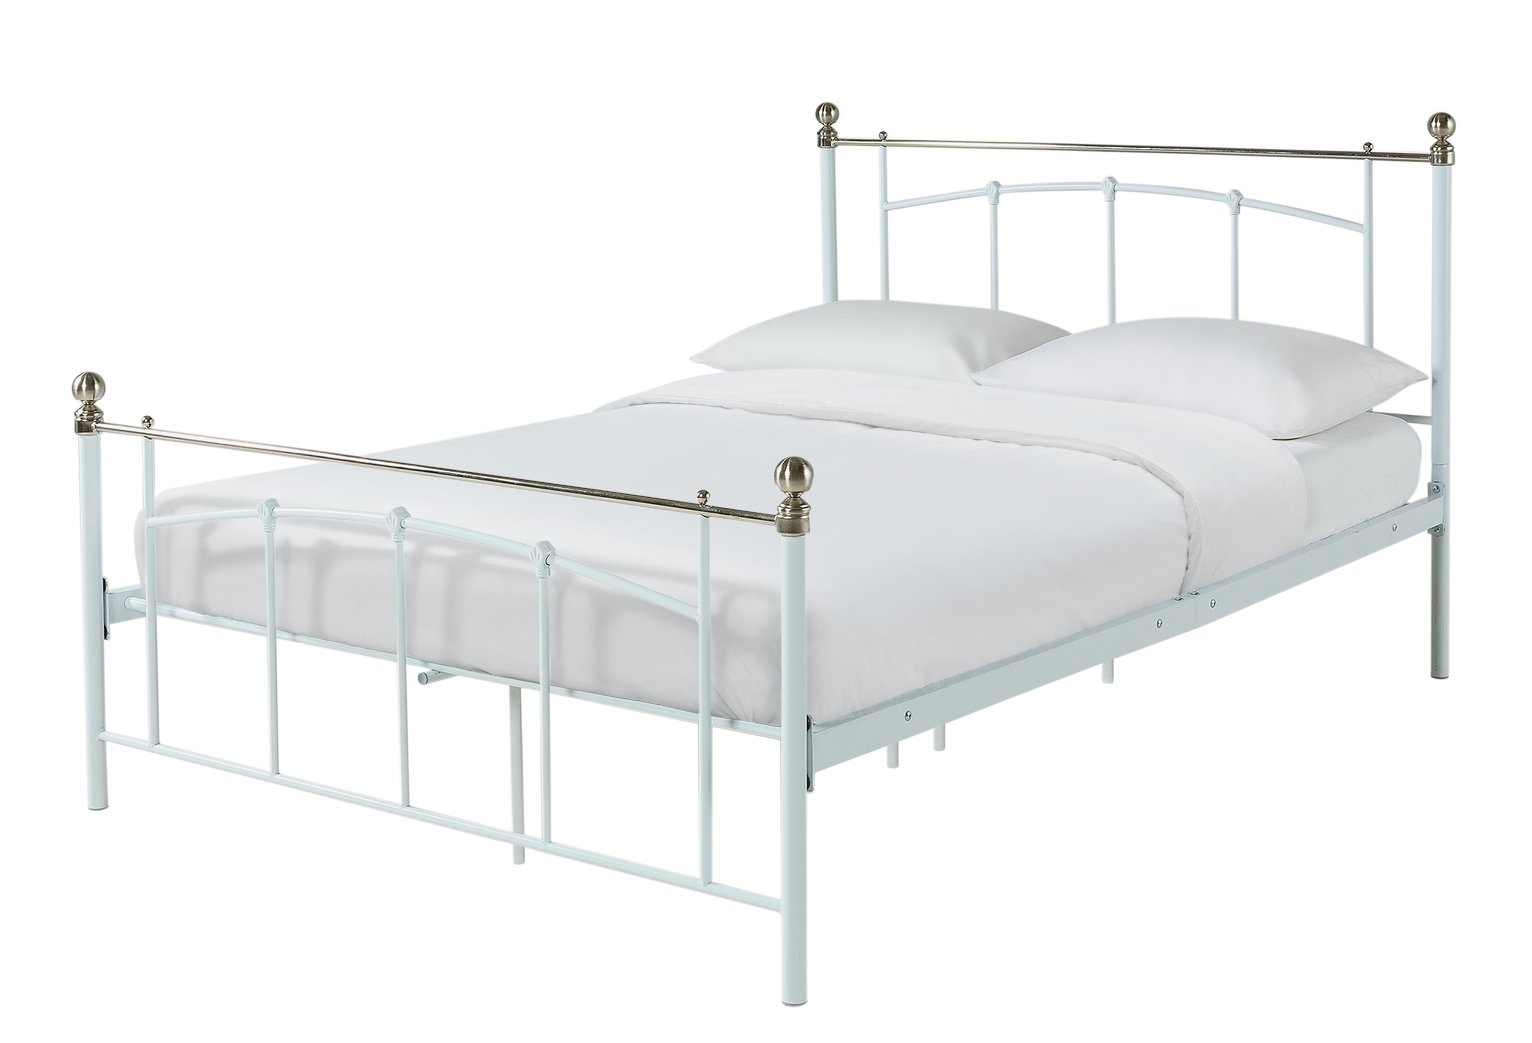 Argos - Yani - Small - Double - Bed Frame - White